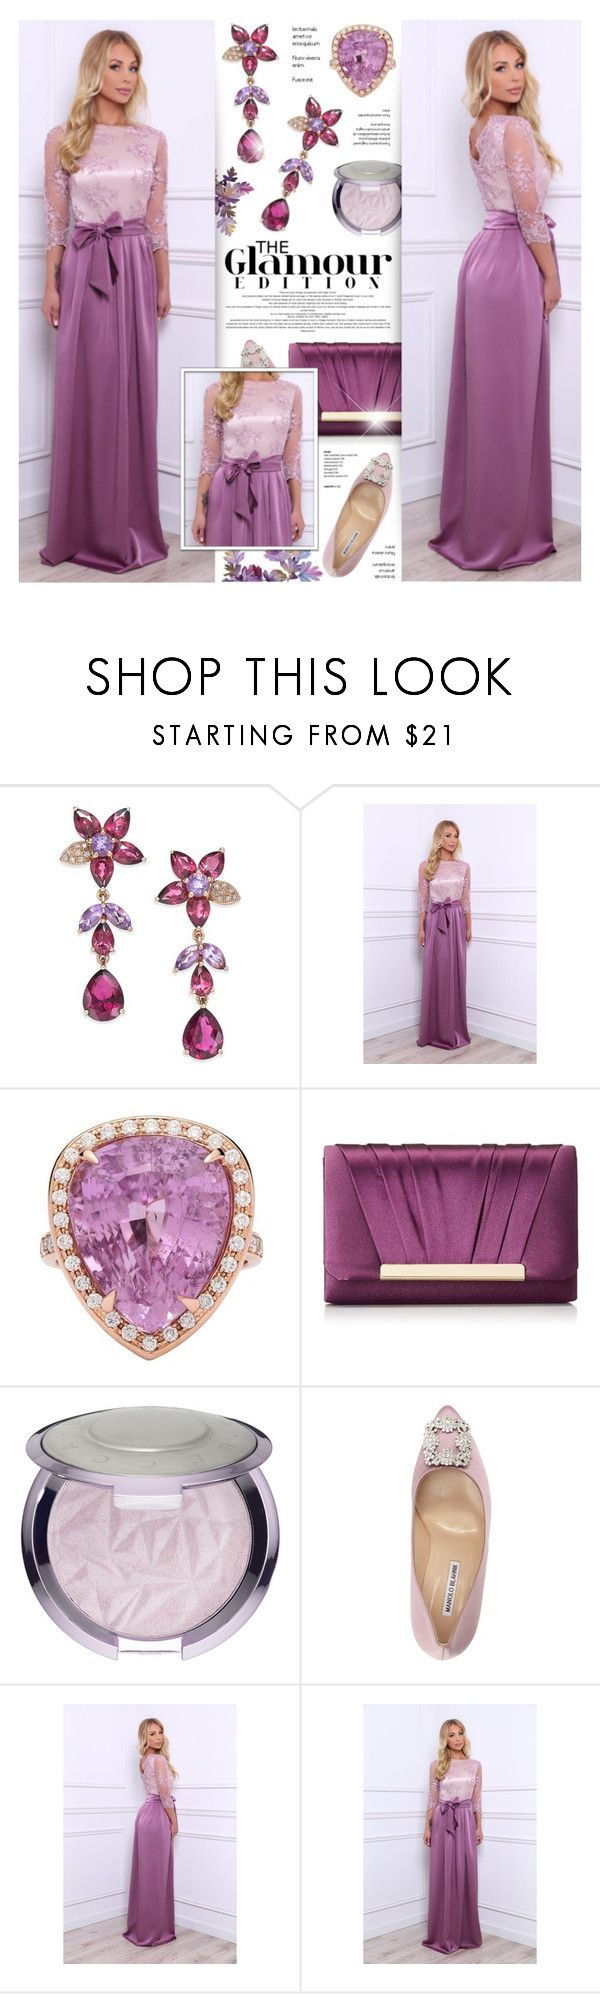 """DesirVale 17"" by anyasdesigns ❤ liked on Polyvore featuring Effy Jewelry, Jessica McClintock and Manolo Blahnik"